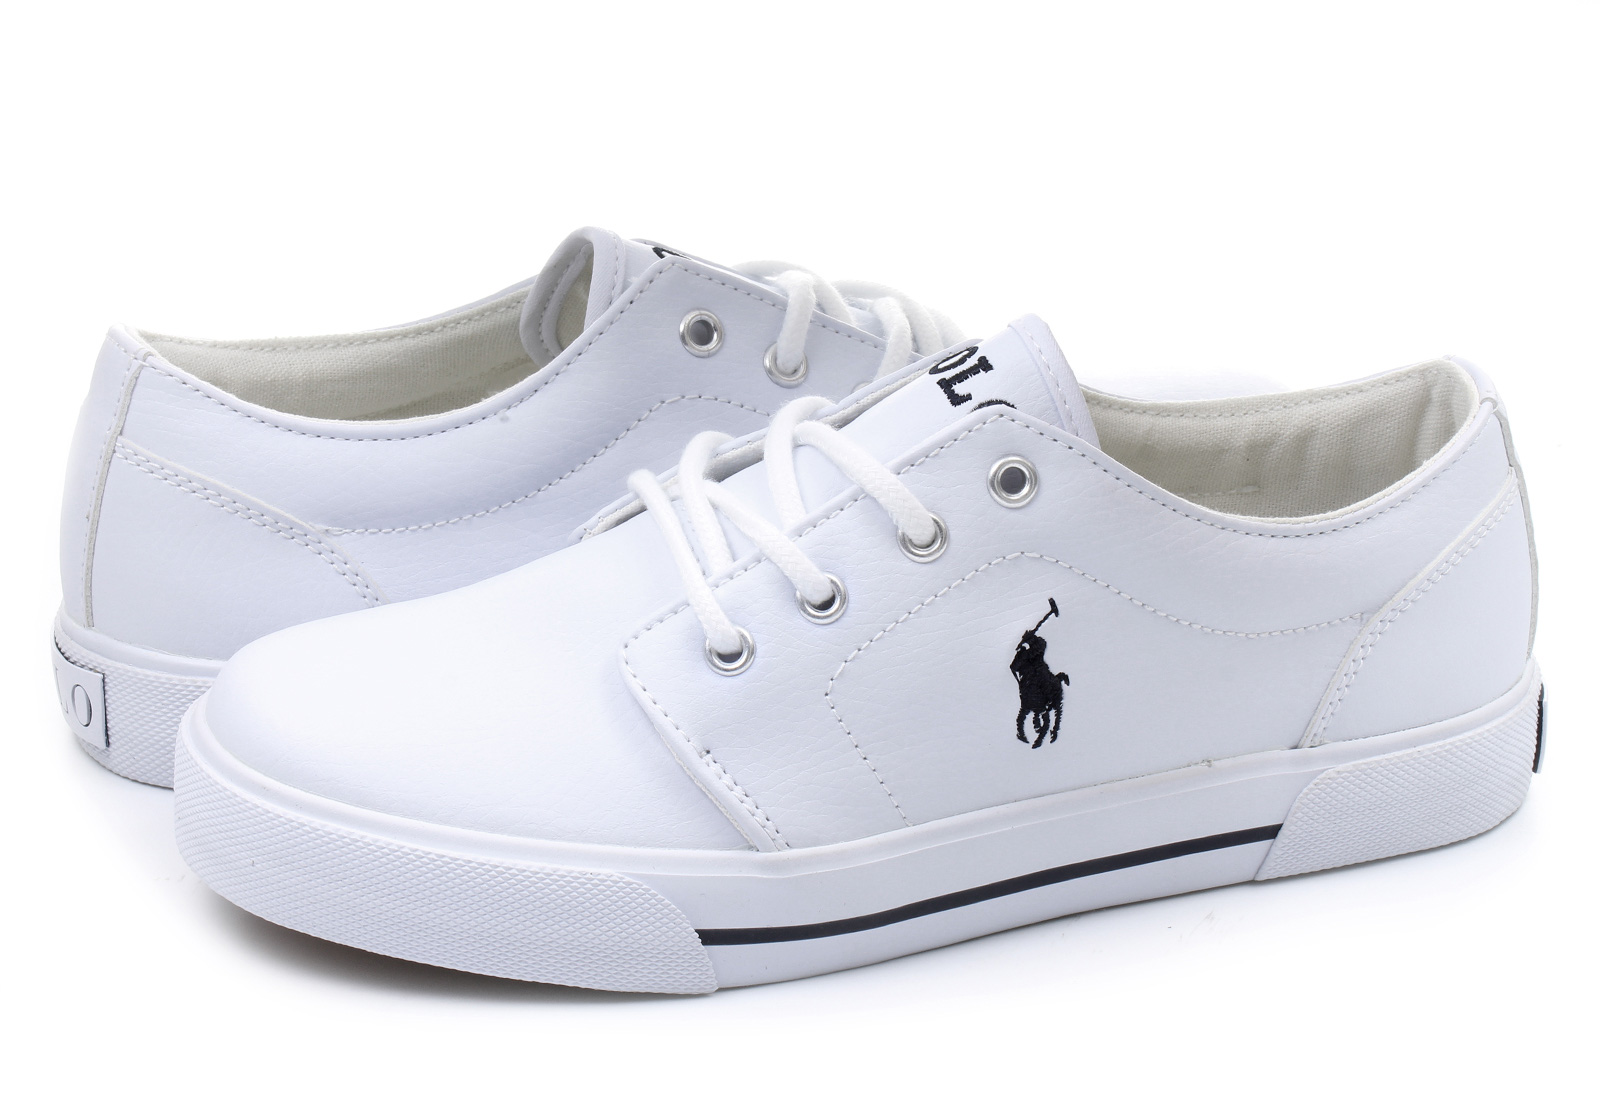 polo ralph lauren sneakers hugo ii 992445 j wht online shop for sneakers shoes and boots. Black Bedroom Furniture Sets. Home Design Ideas